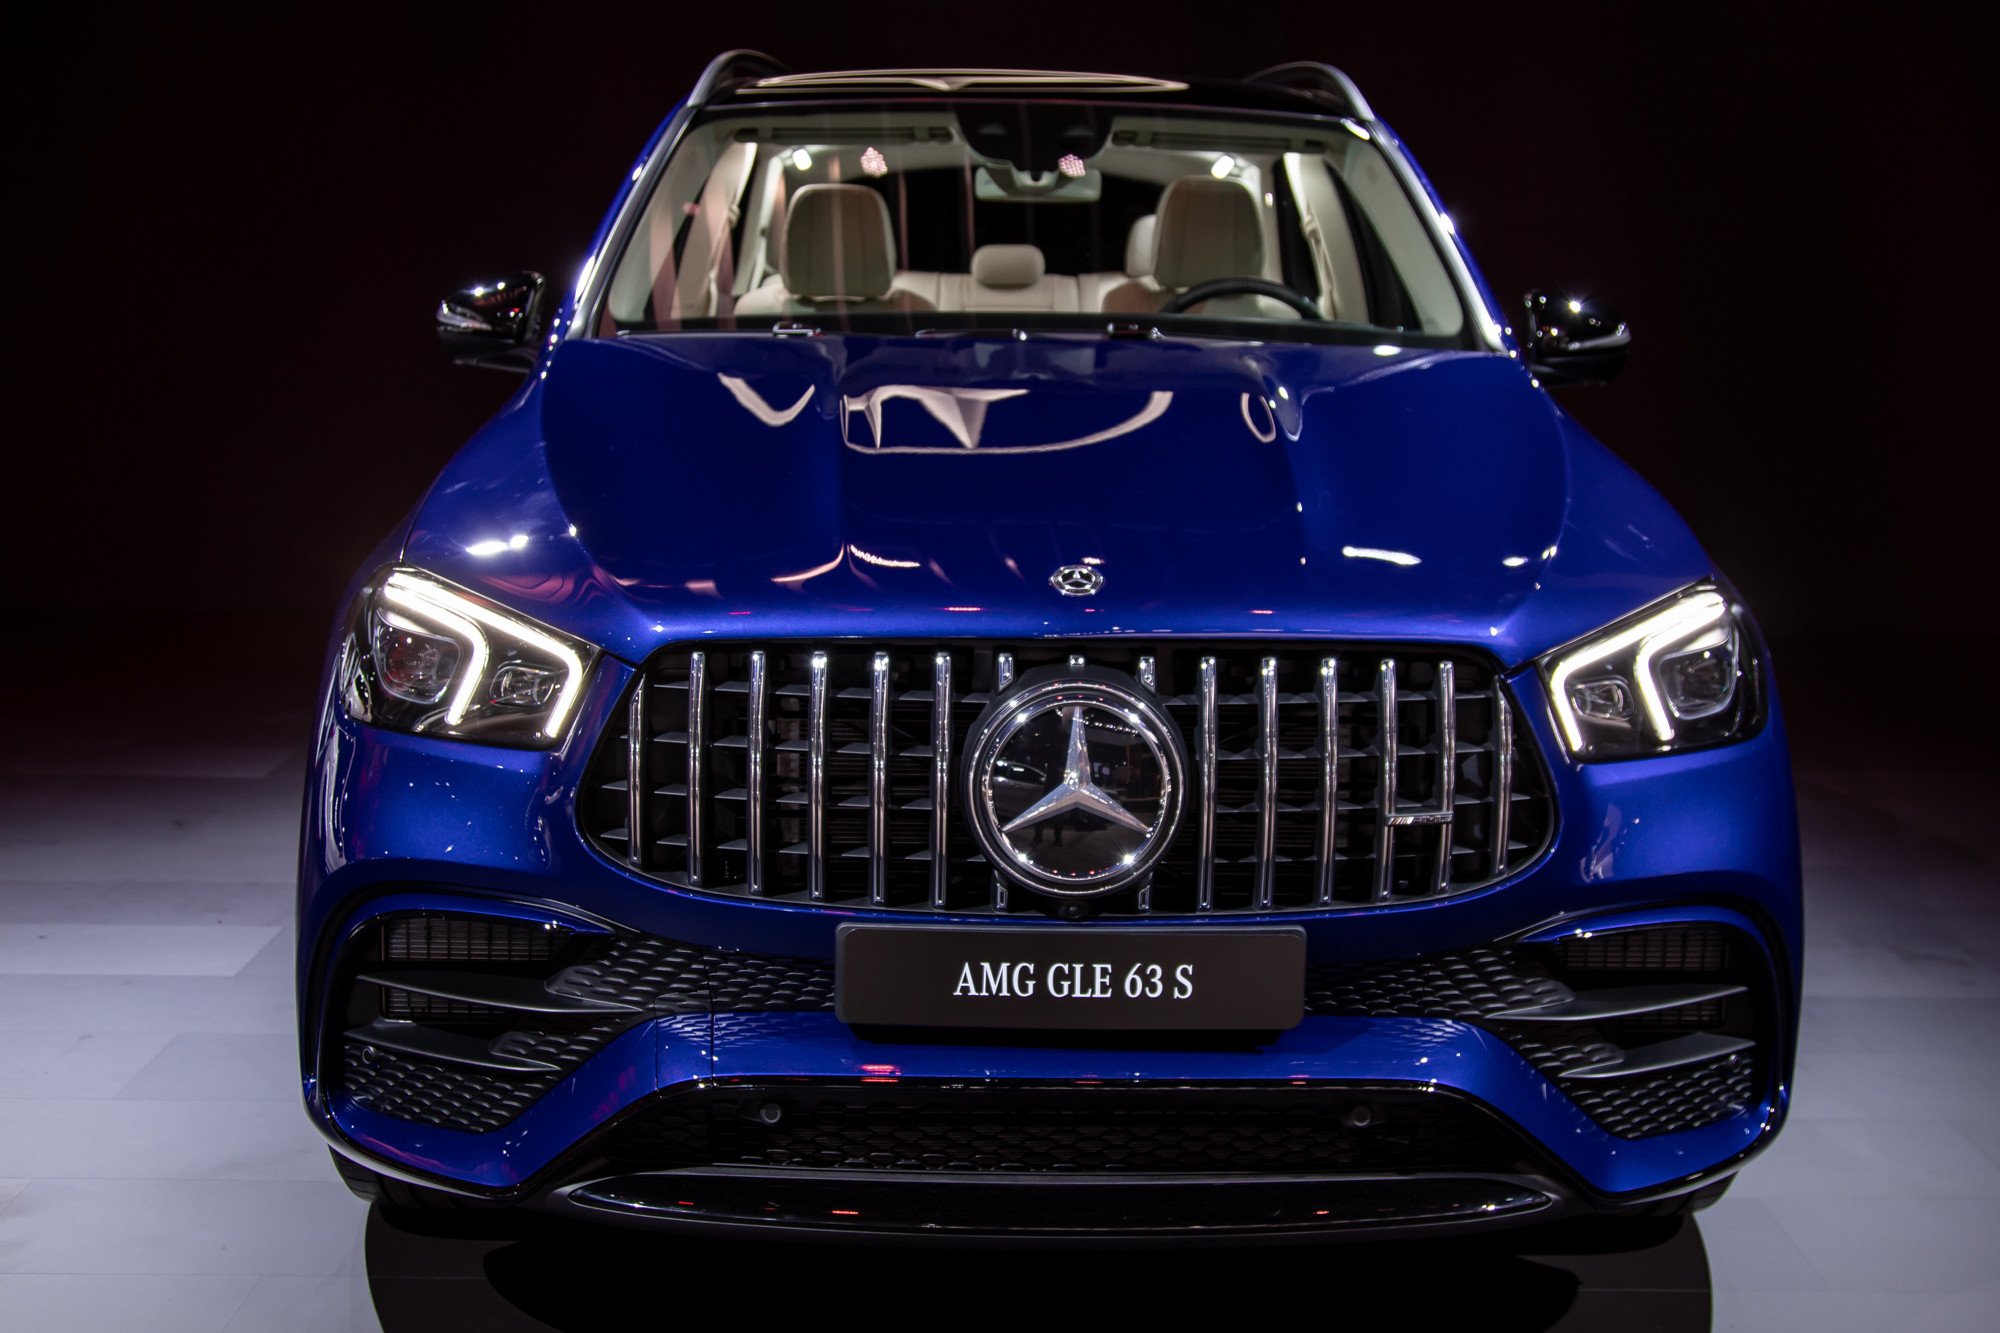 2021 Mercedes-AMG GLE63 S and GLS63: Big, Blingy Speed